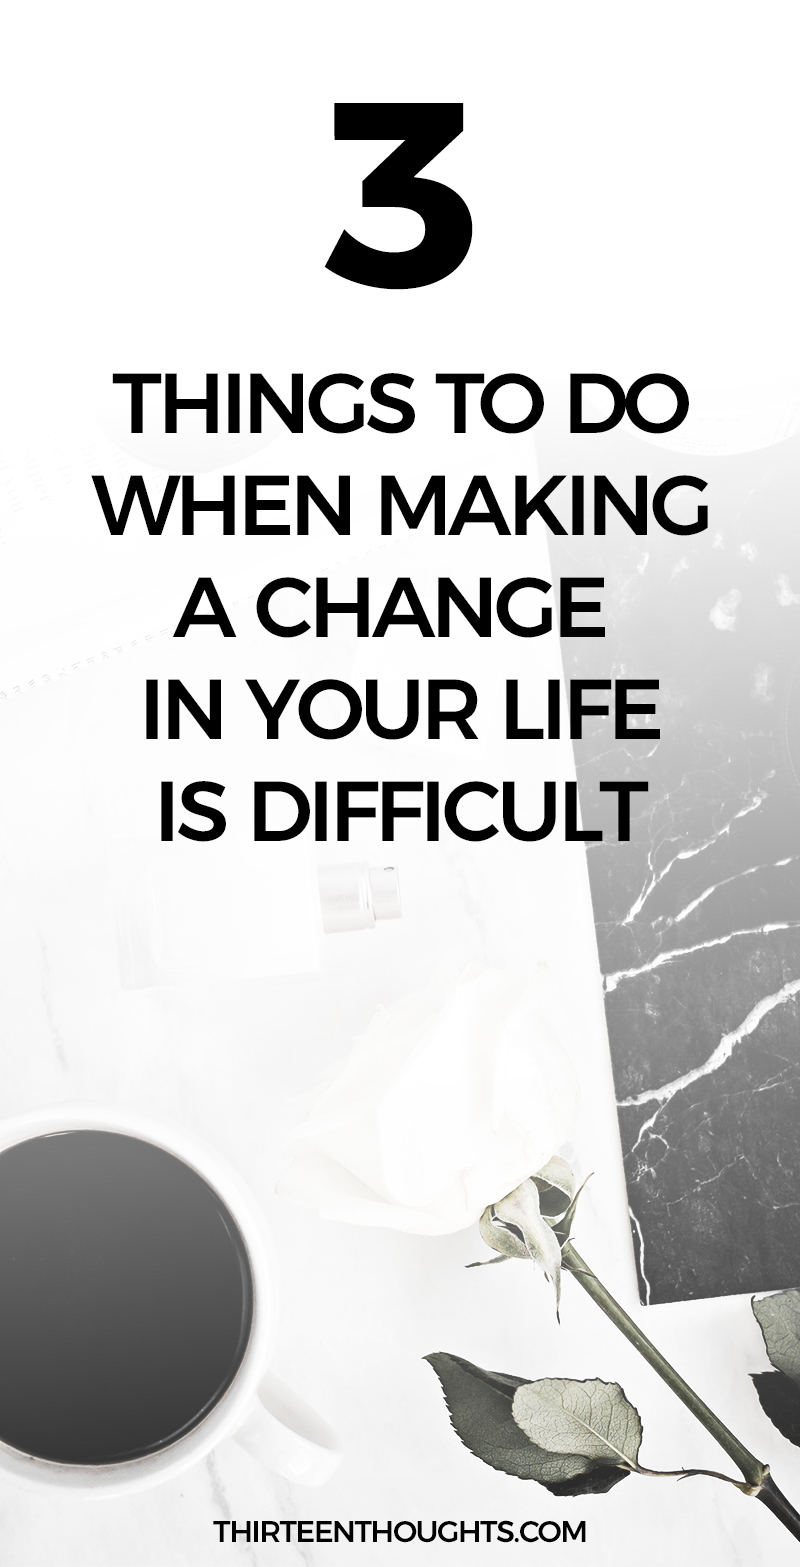 What to do when making a change in life is difficult